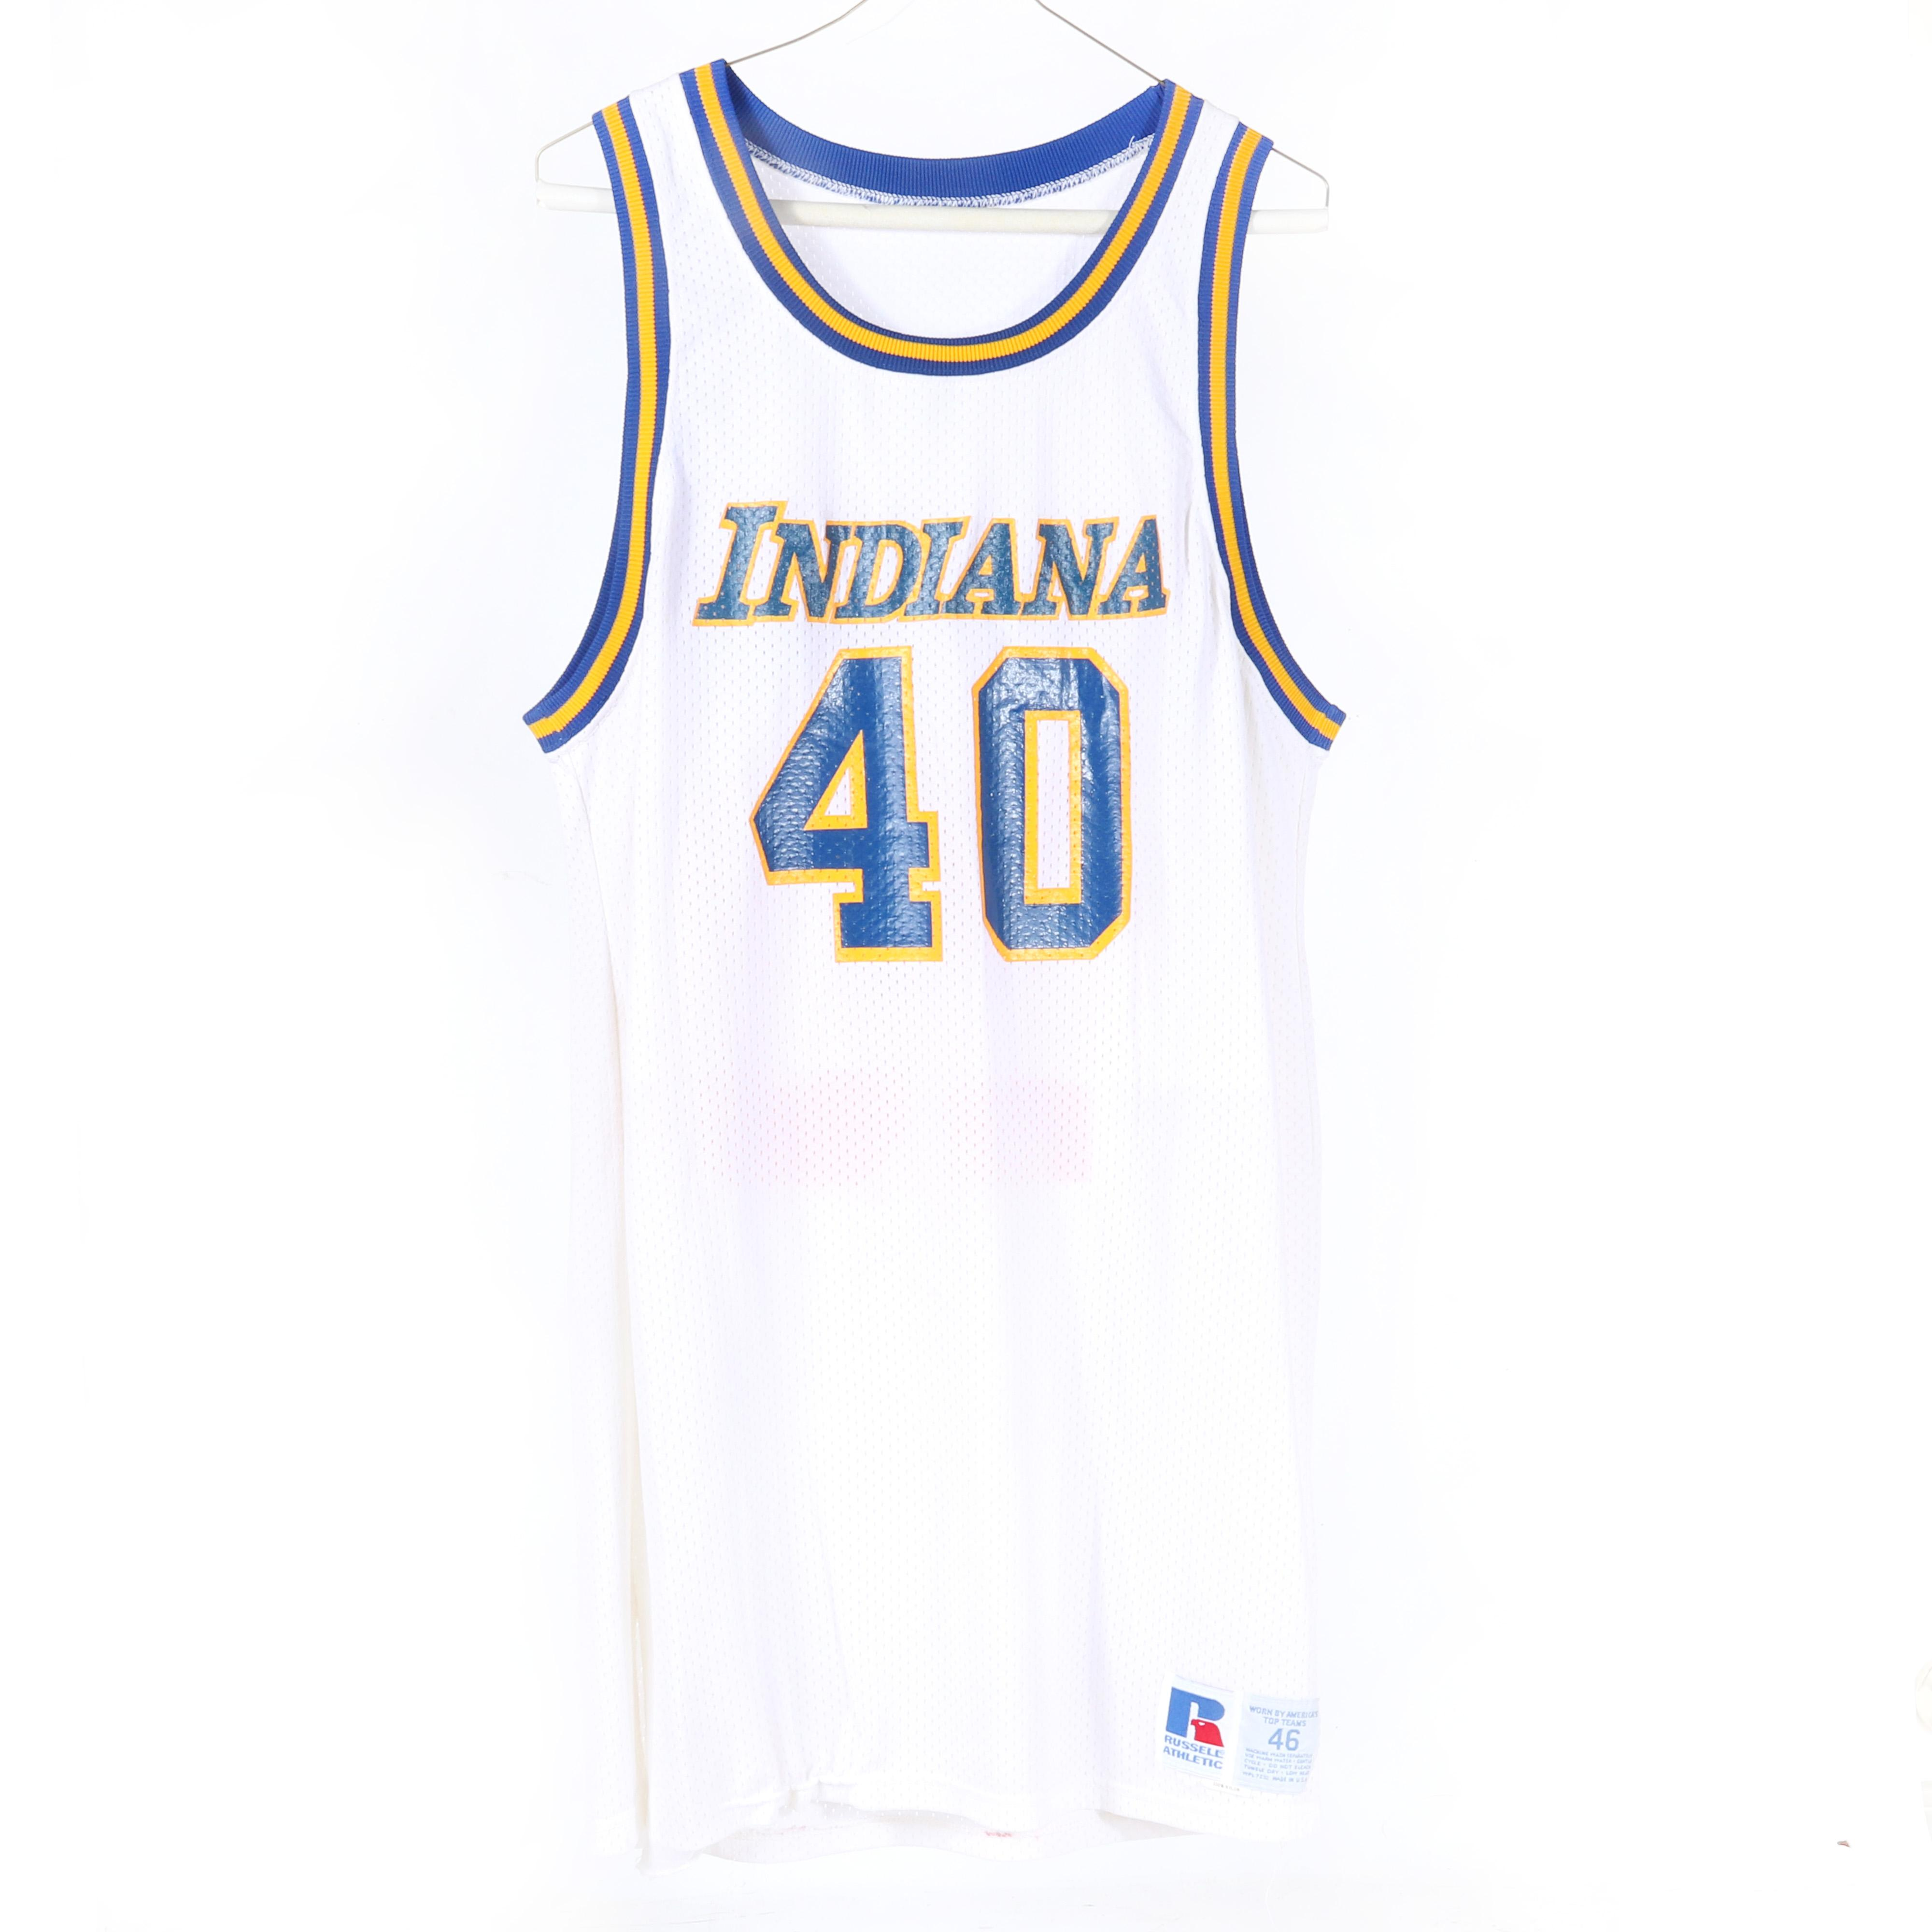 1983-84 Steve Stipanovich Indiana Pacers Game Used Home Jersey